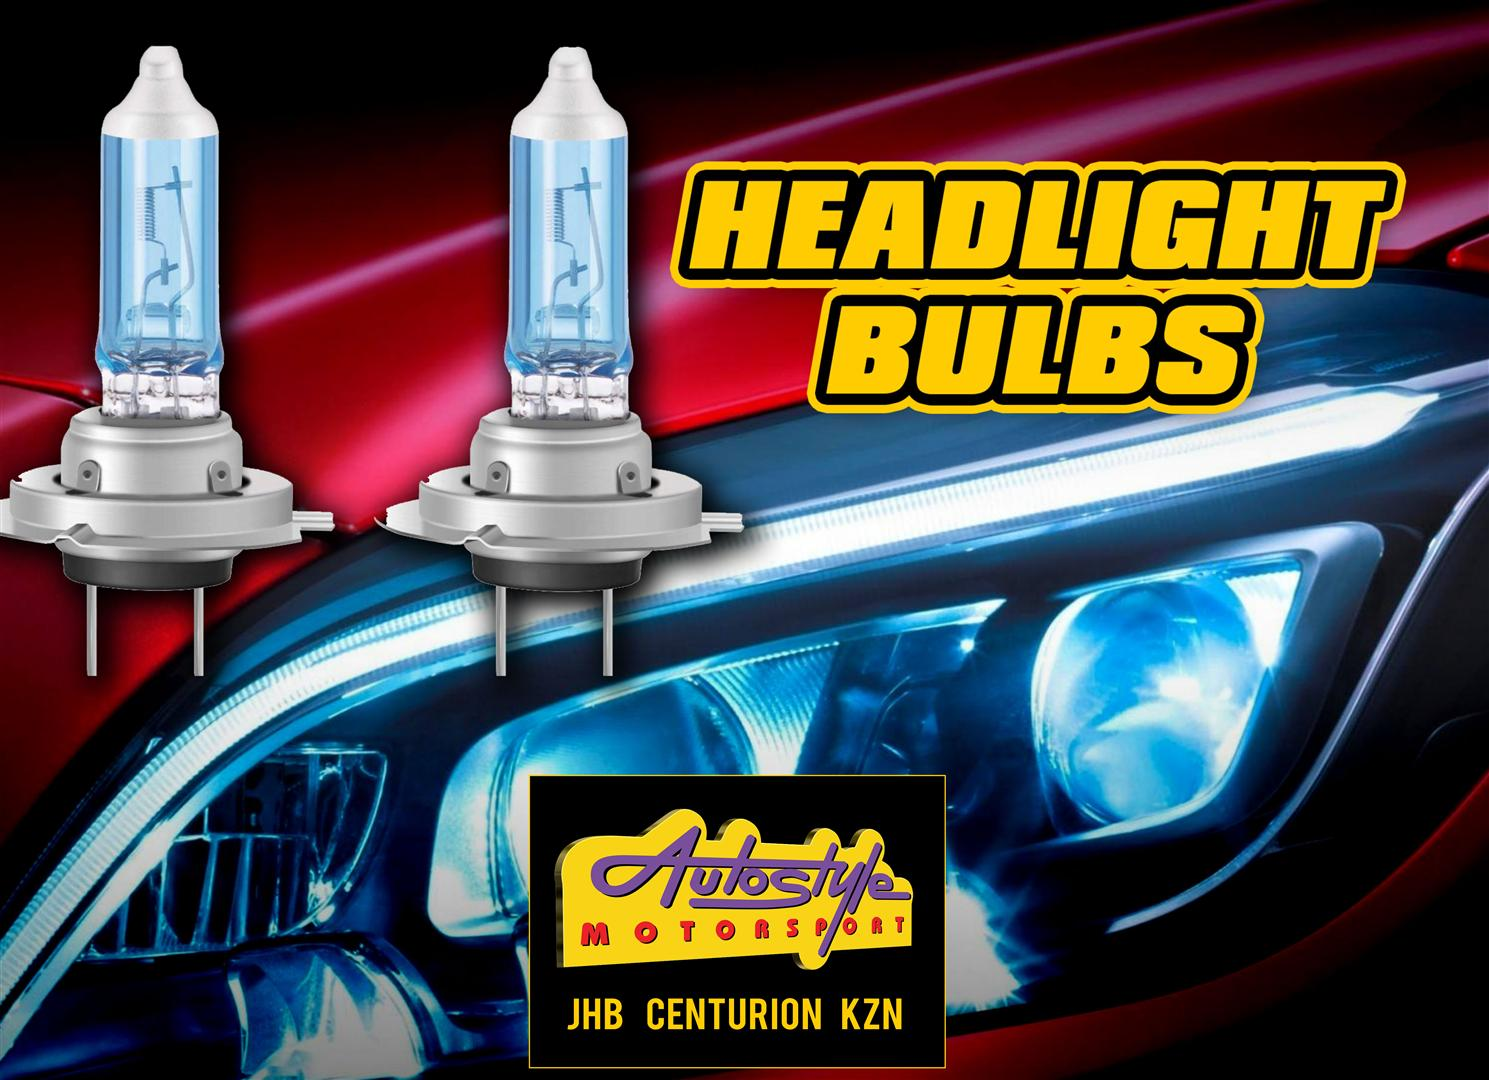 Replacement headlight globes assorted sizes and brands.